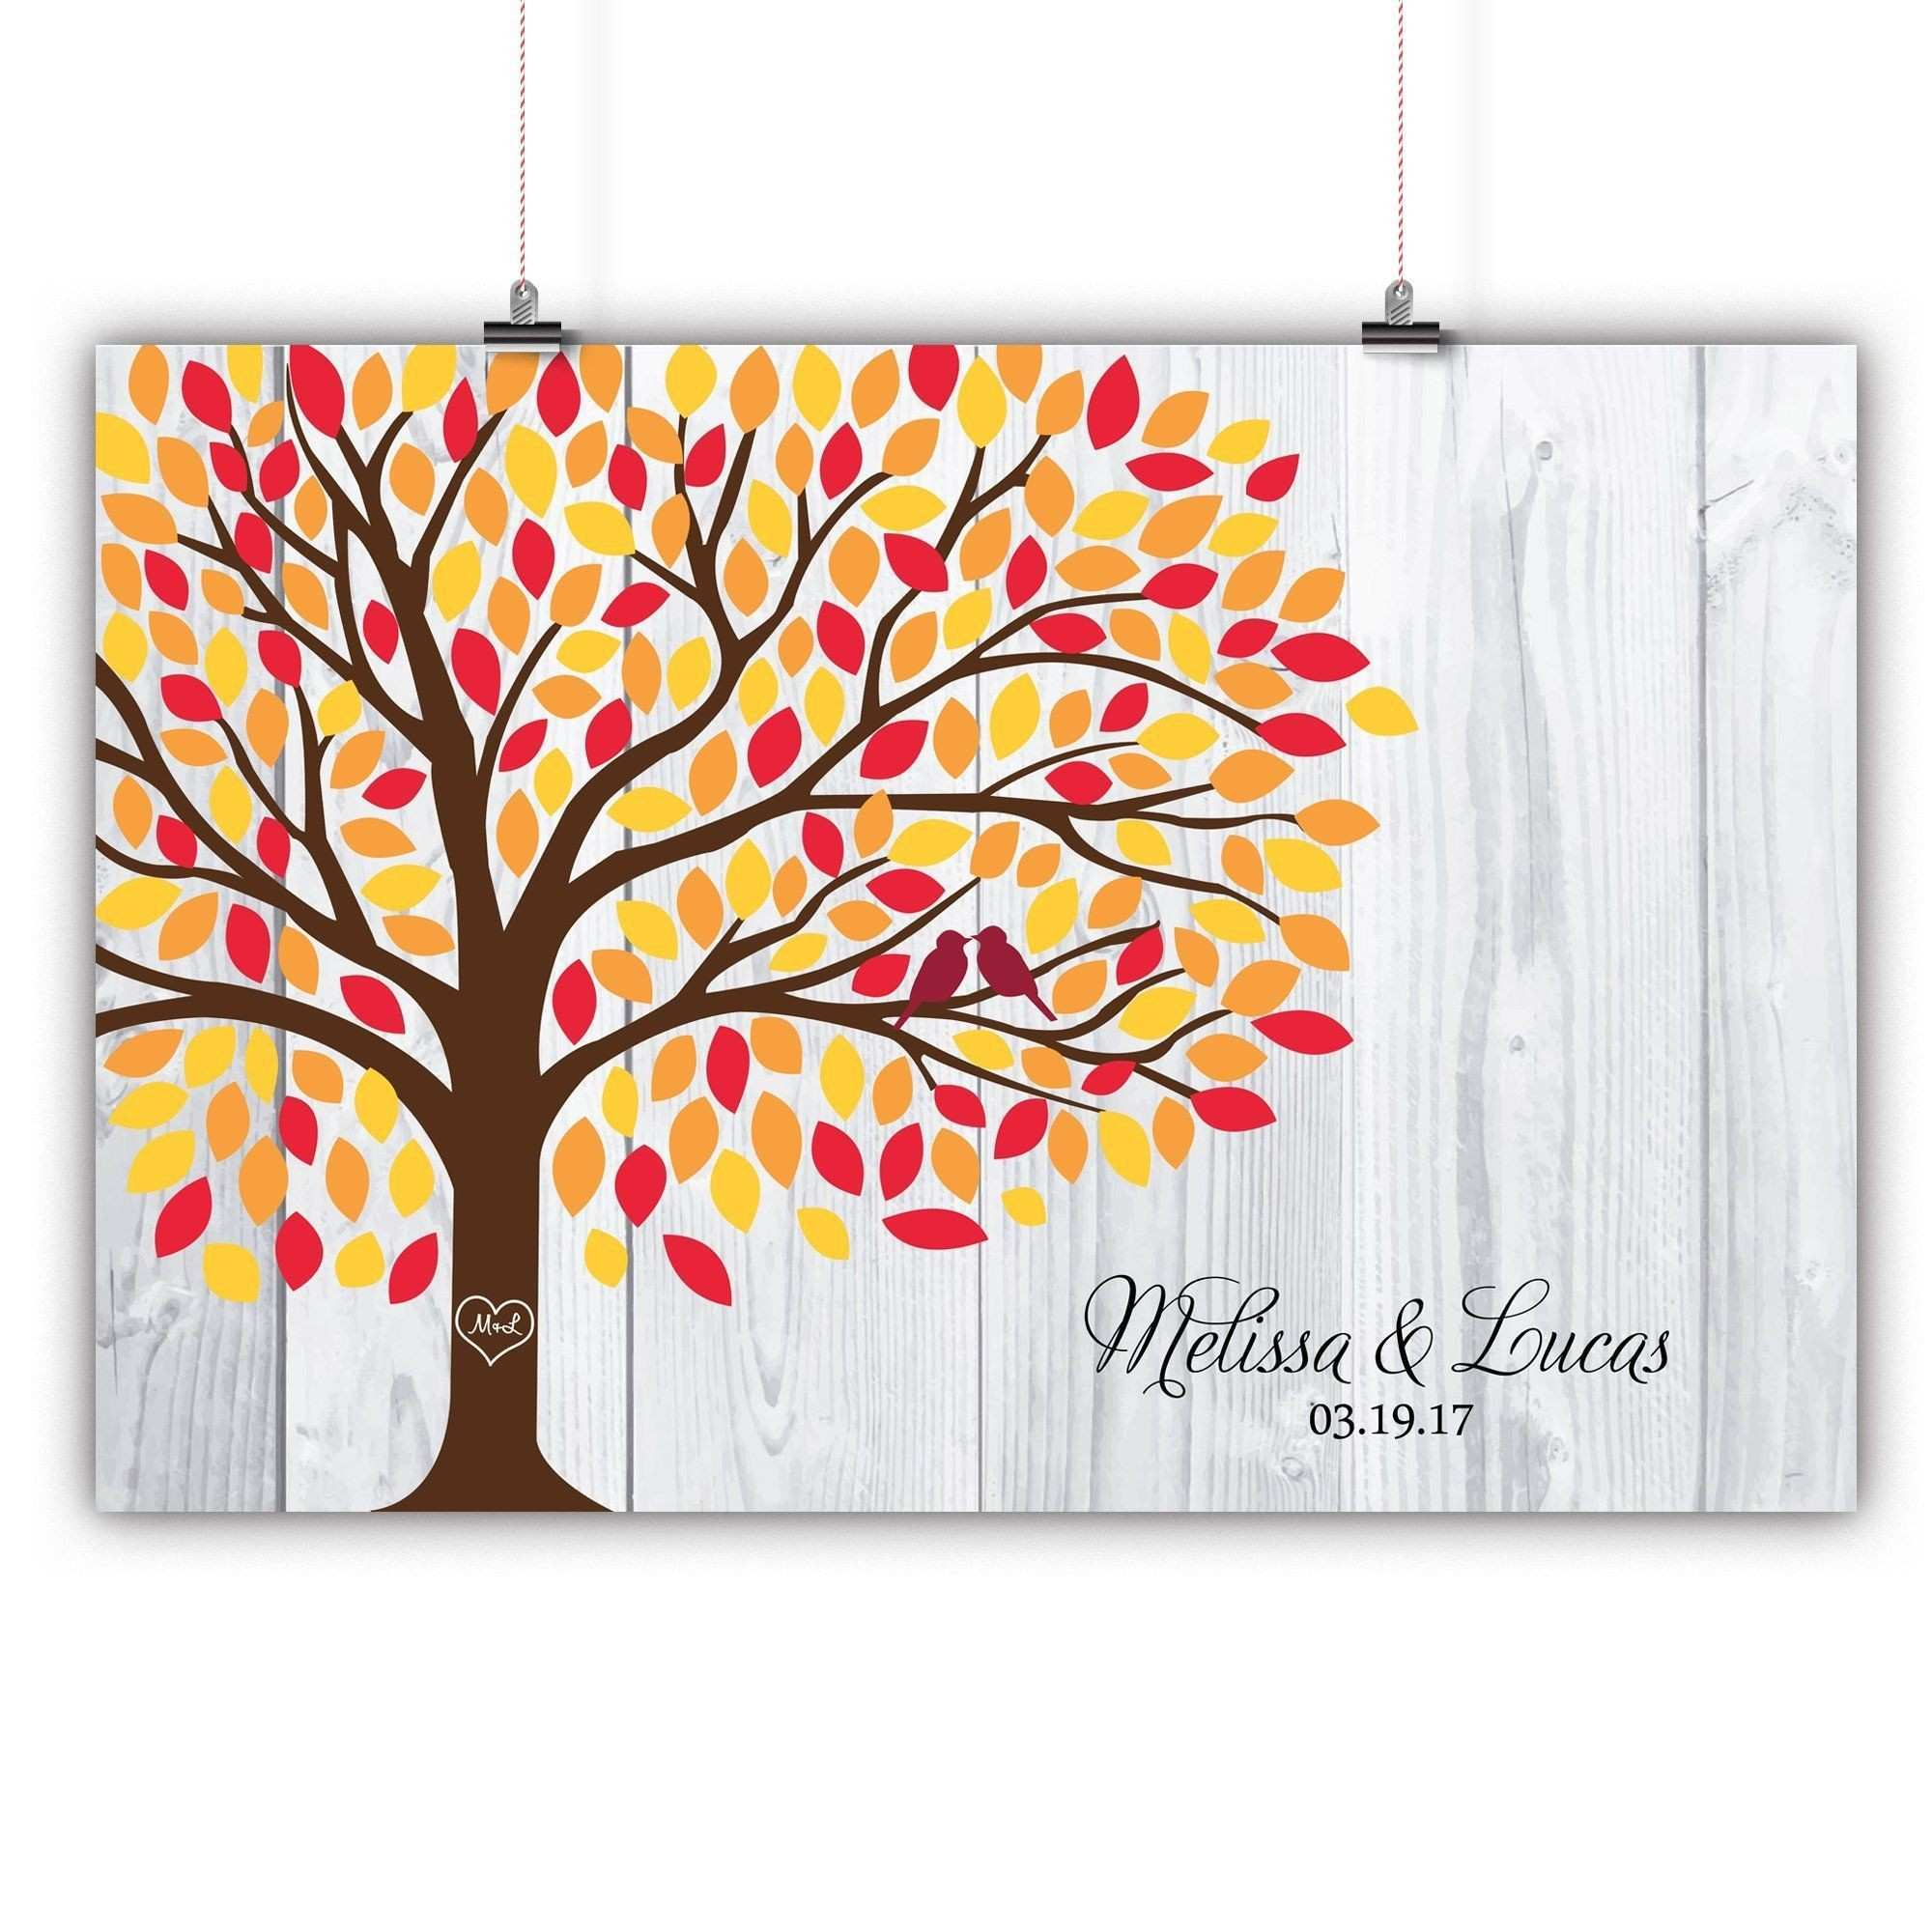 tree prints for walls elegant personalized wedding tree guest book